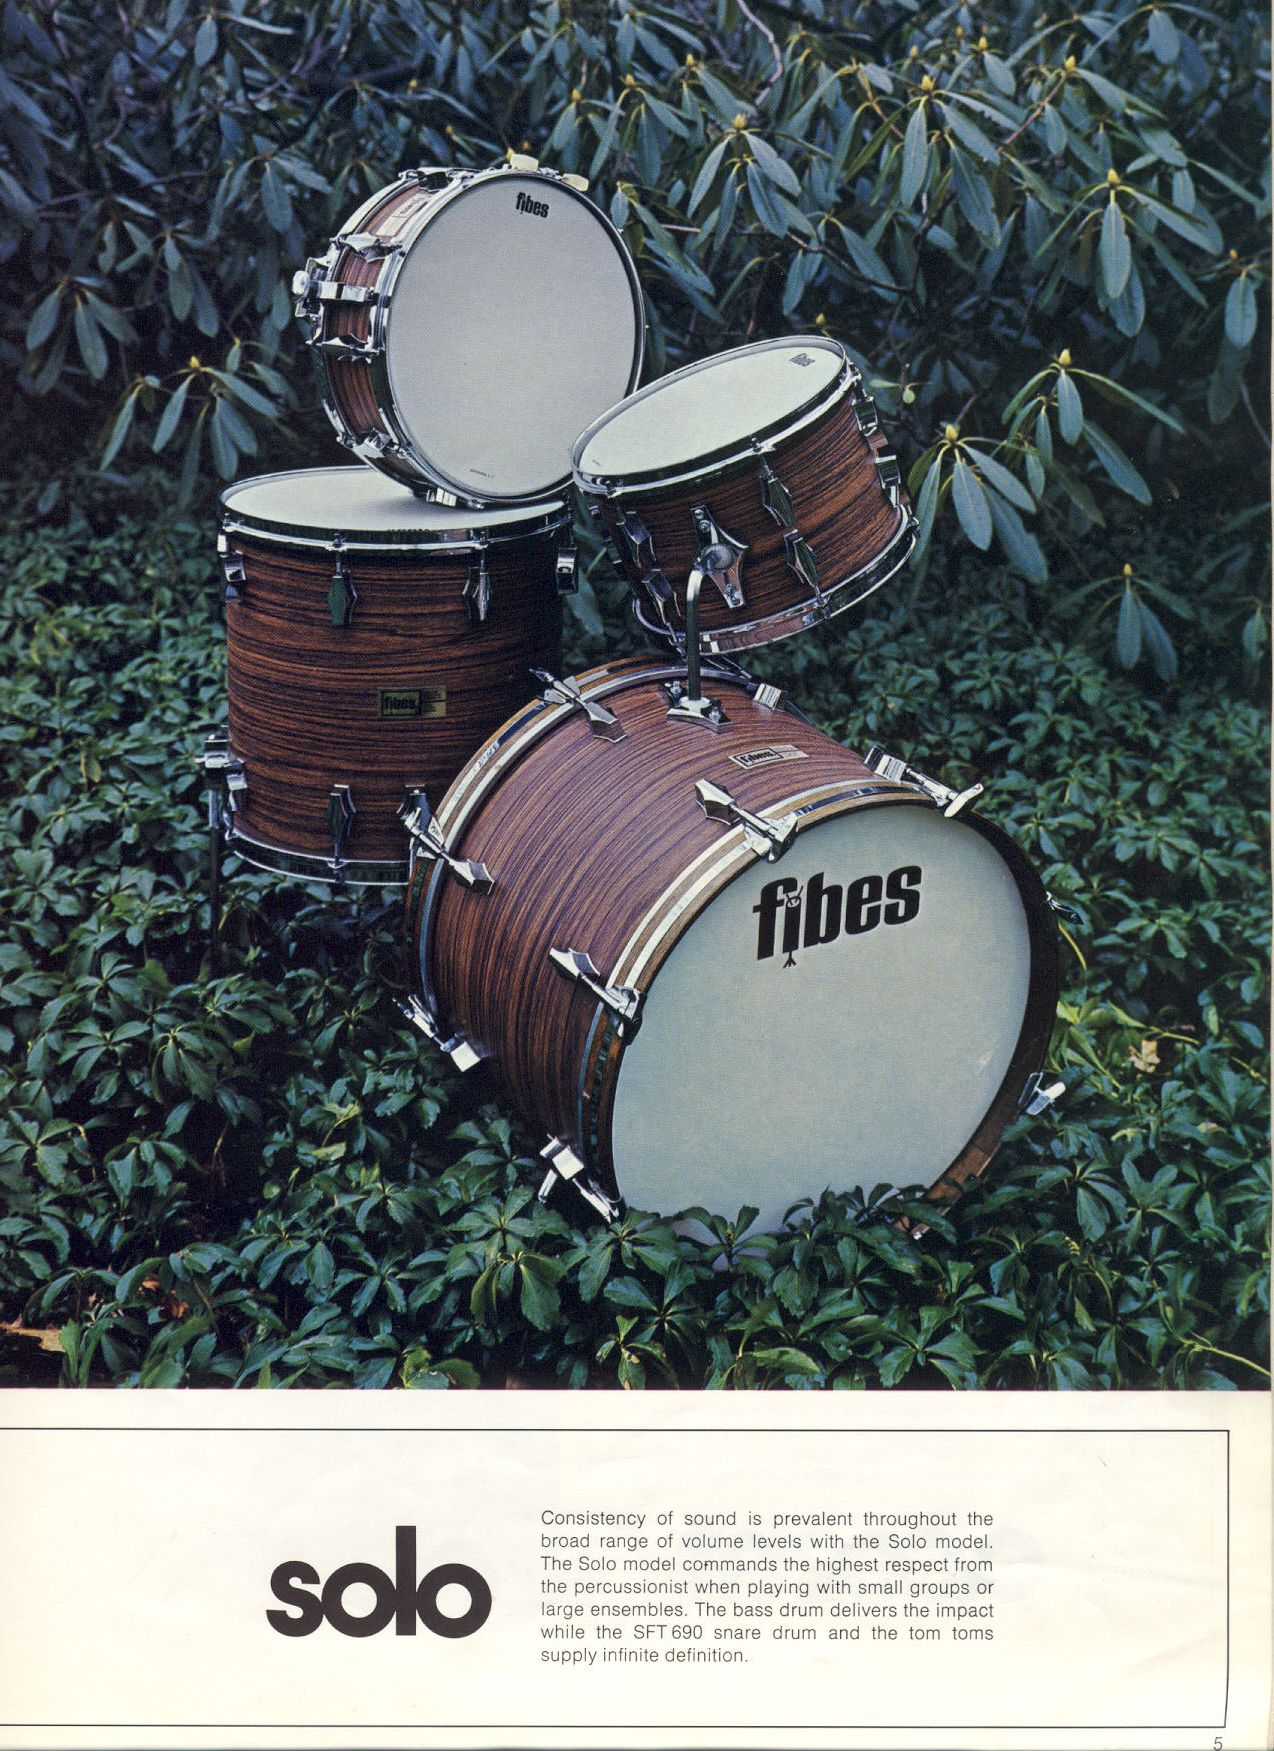 Fibes catalogue, 1972